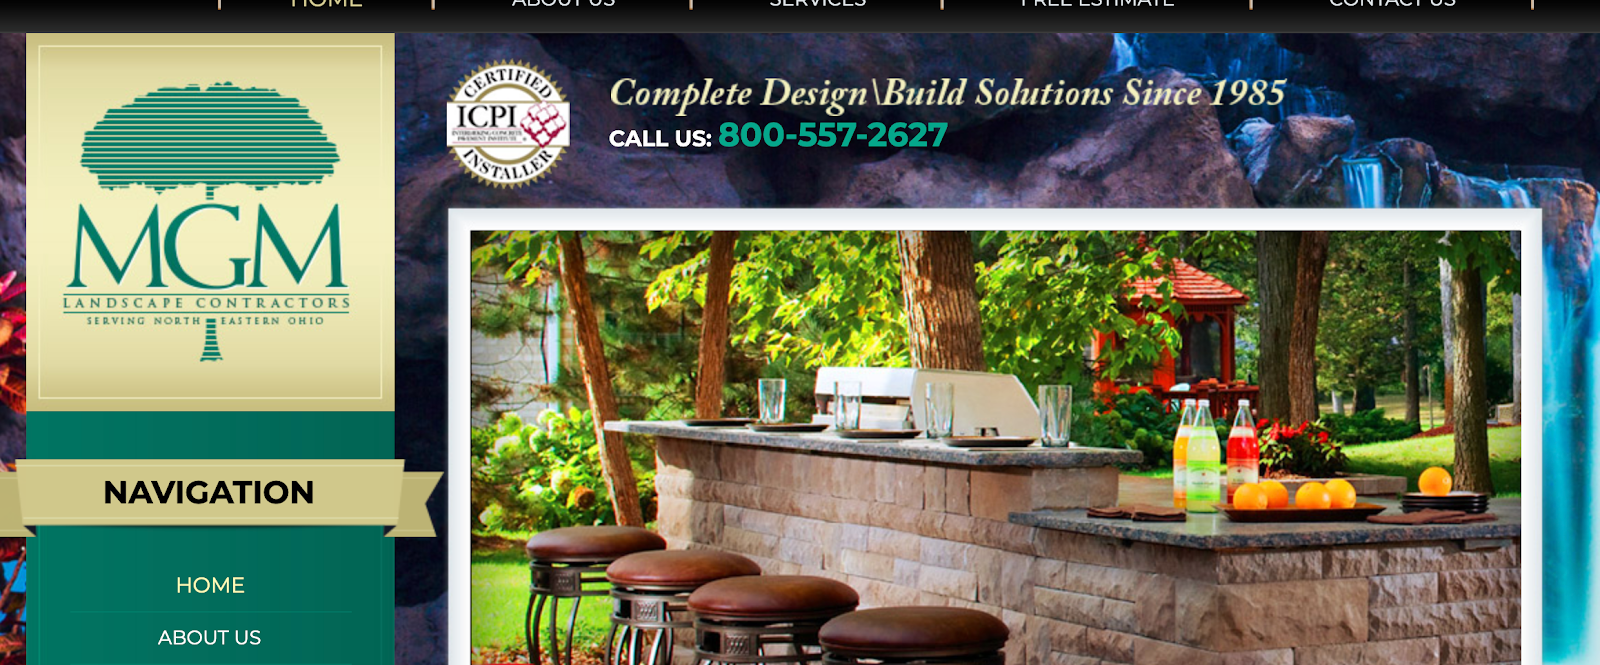 Landscape company shows pictures of outdoor projects.